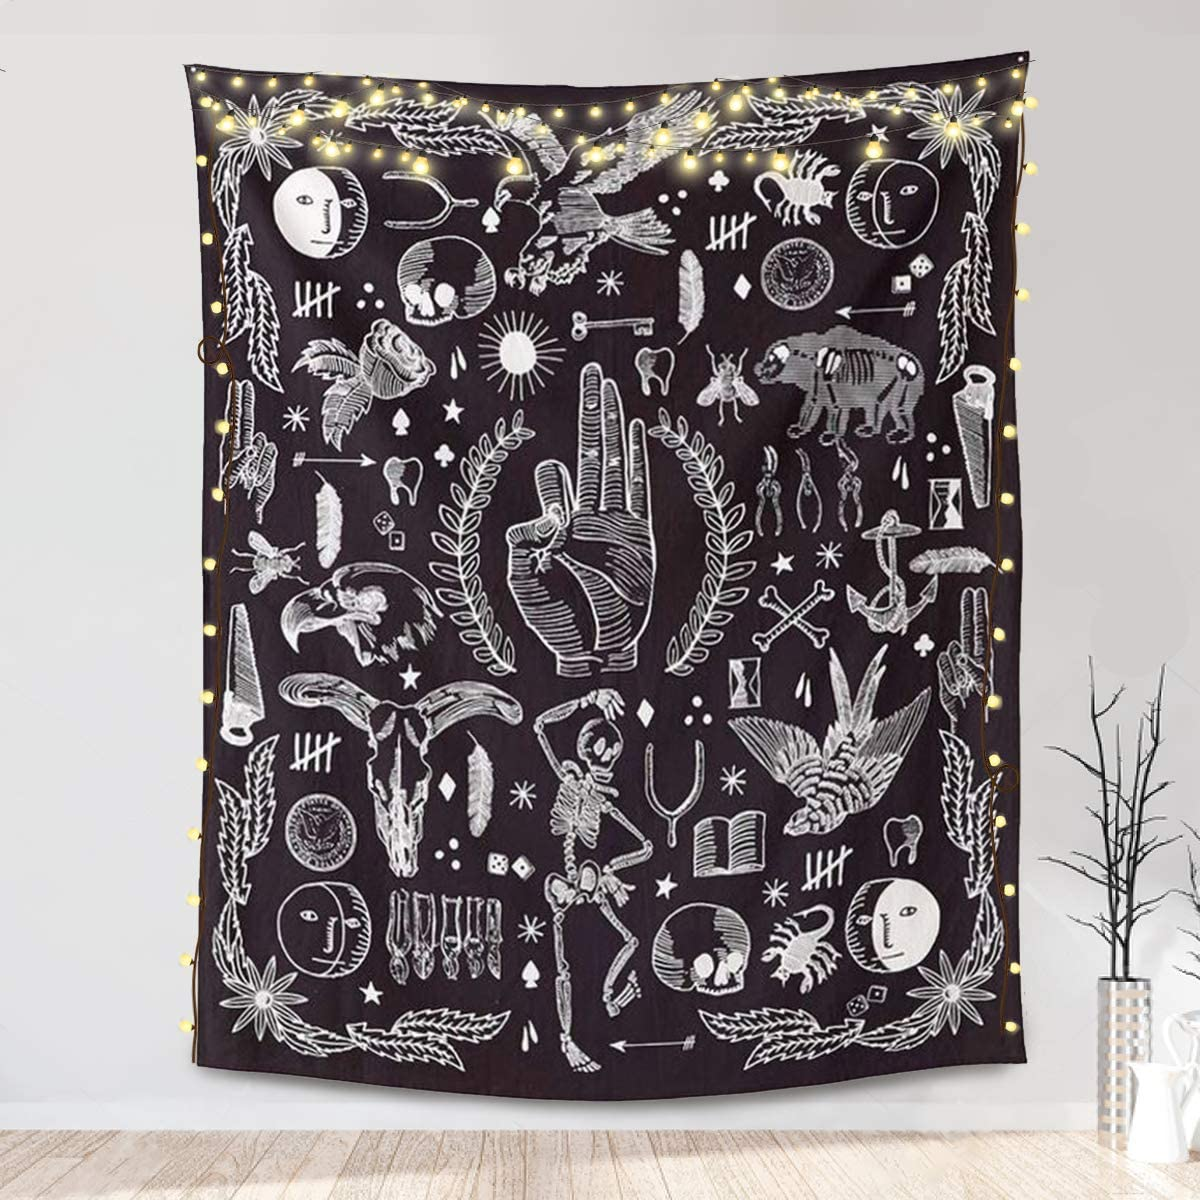 Amazon Com Jeteven Polyester Hanging Tapestry Wall Hanging Blanket Bedspread Beach Towels Picnic Mat Home Decor Bed Cover Black Gothic 165x148cm 65 X58 Black Everything Else